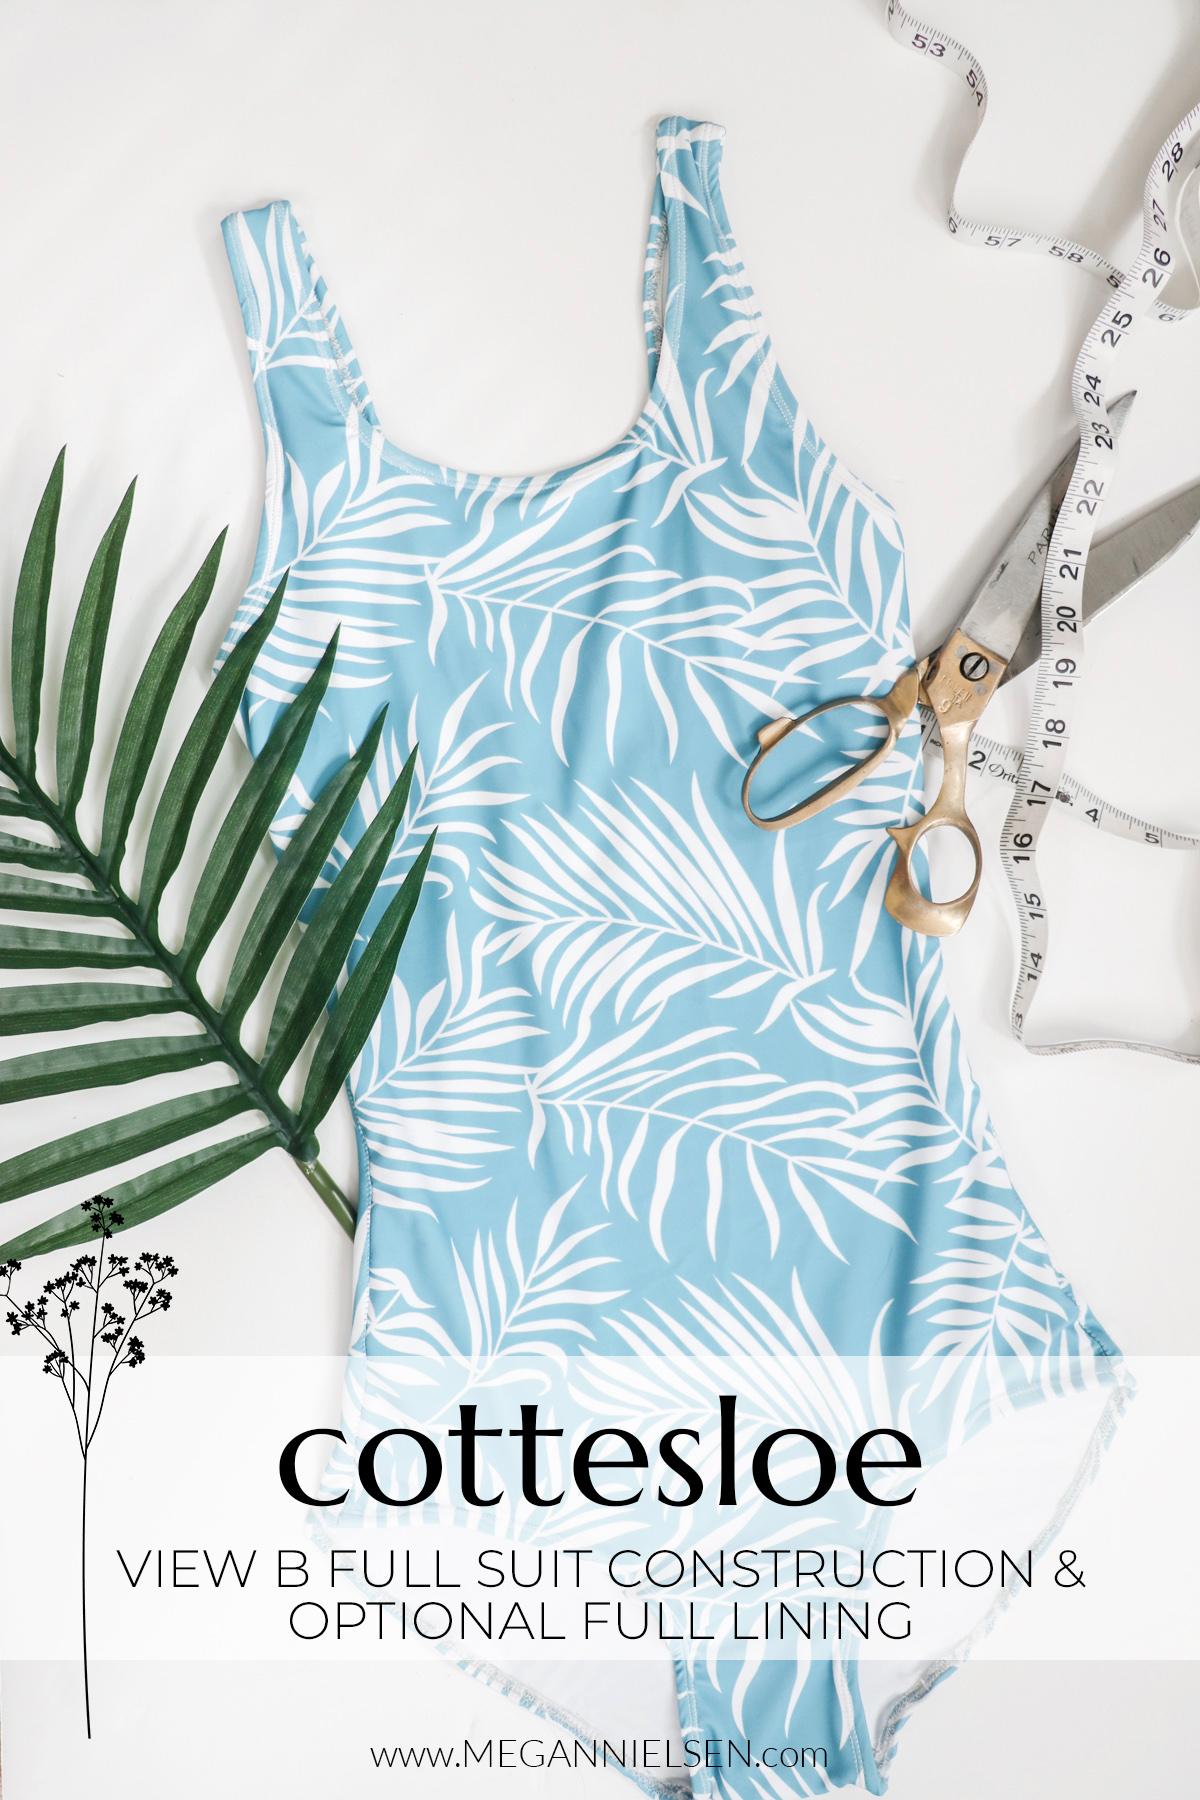 Cottesloe View B full suit construction & optional full lining